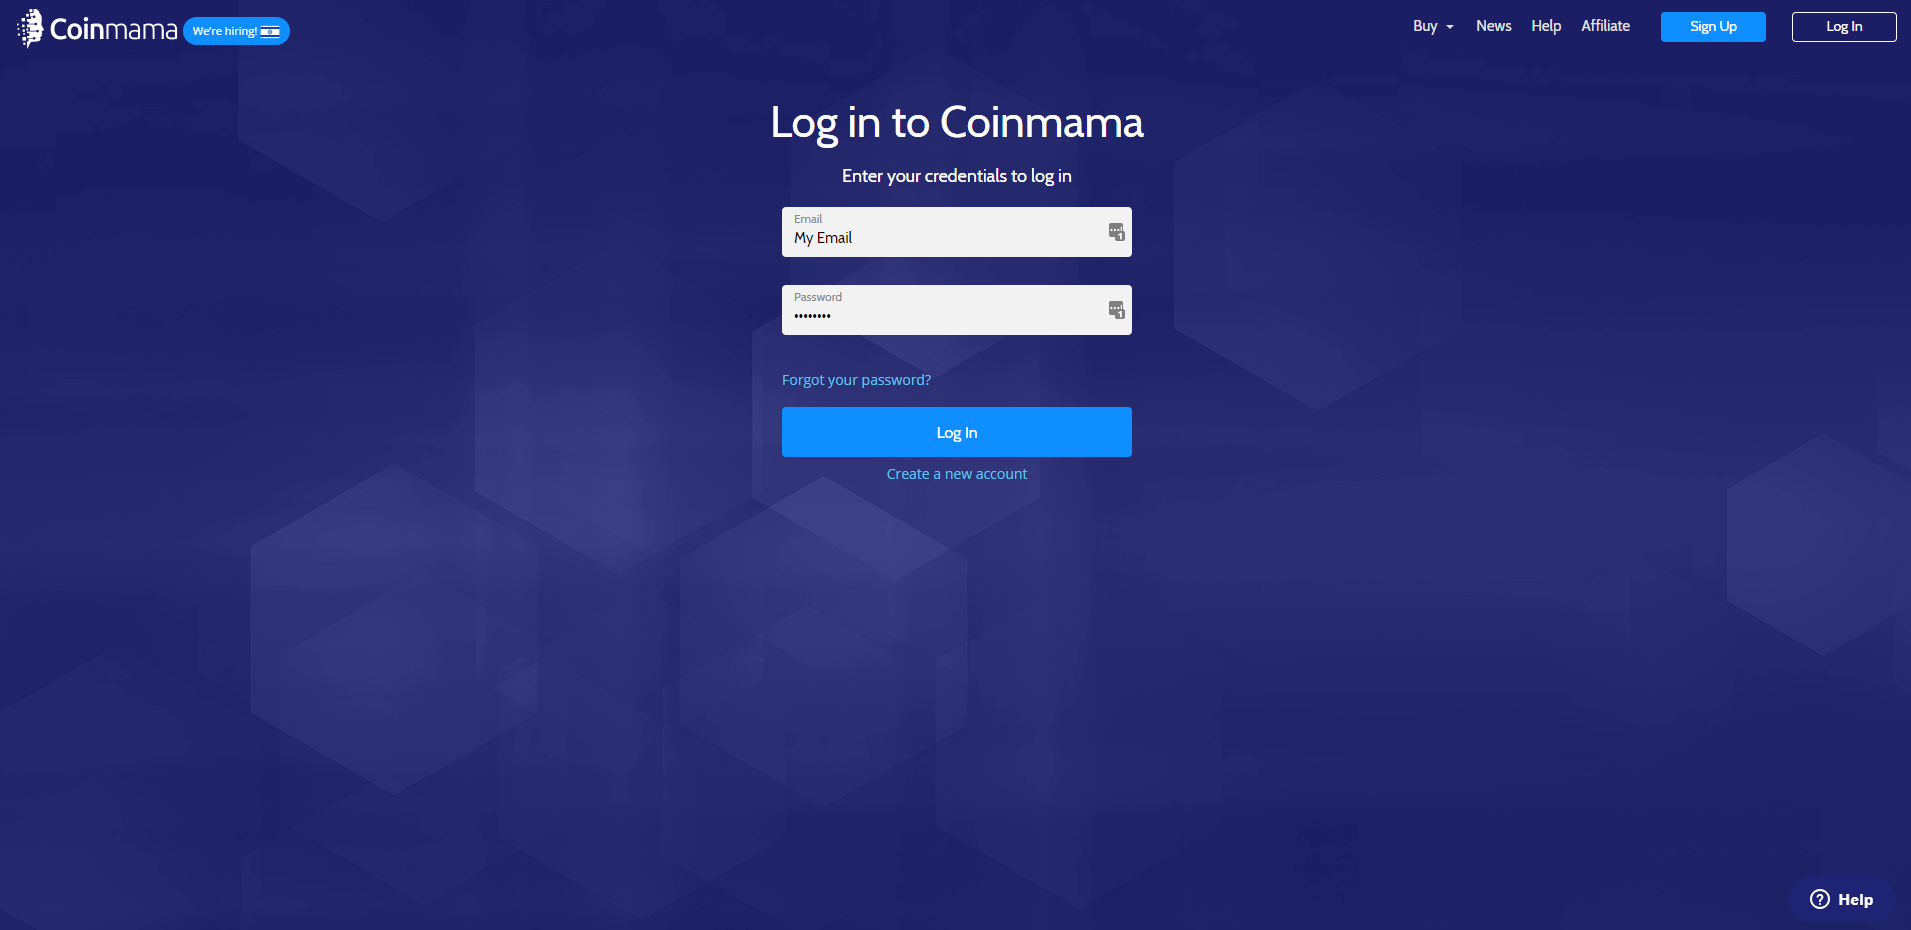 login to Coinmama